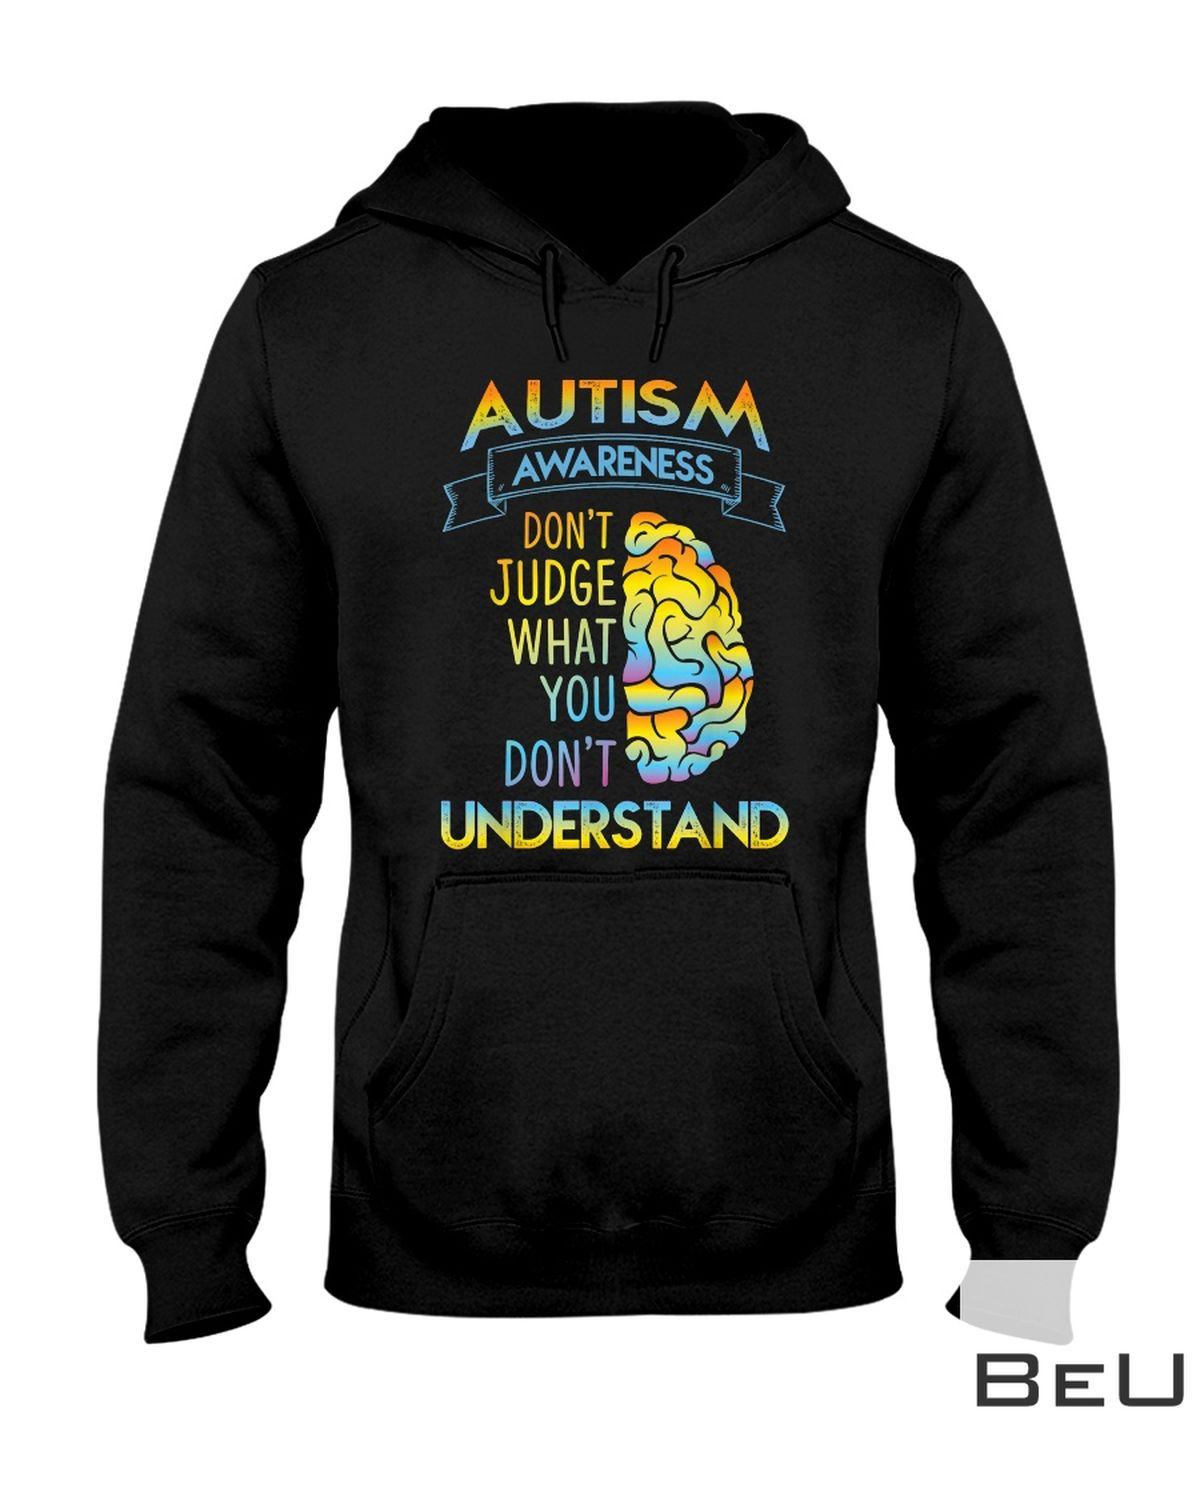 Autism Awareness Don't Judge What You Don't Understand Shirt z